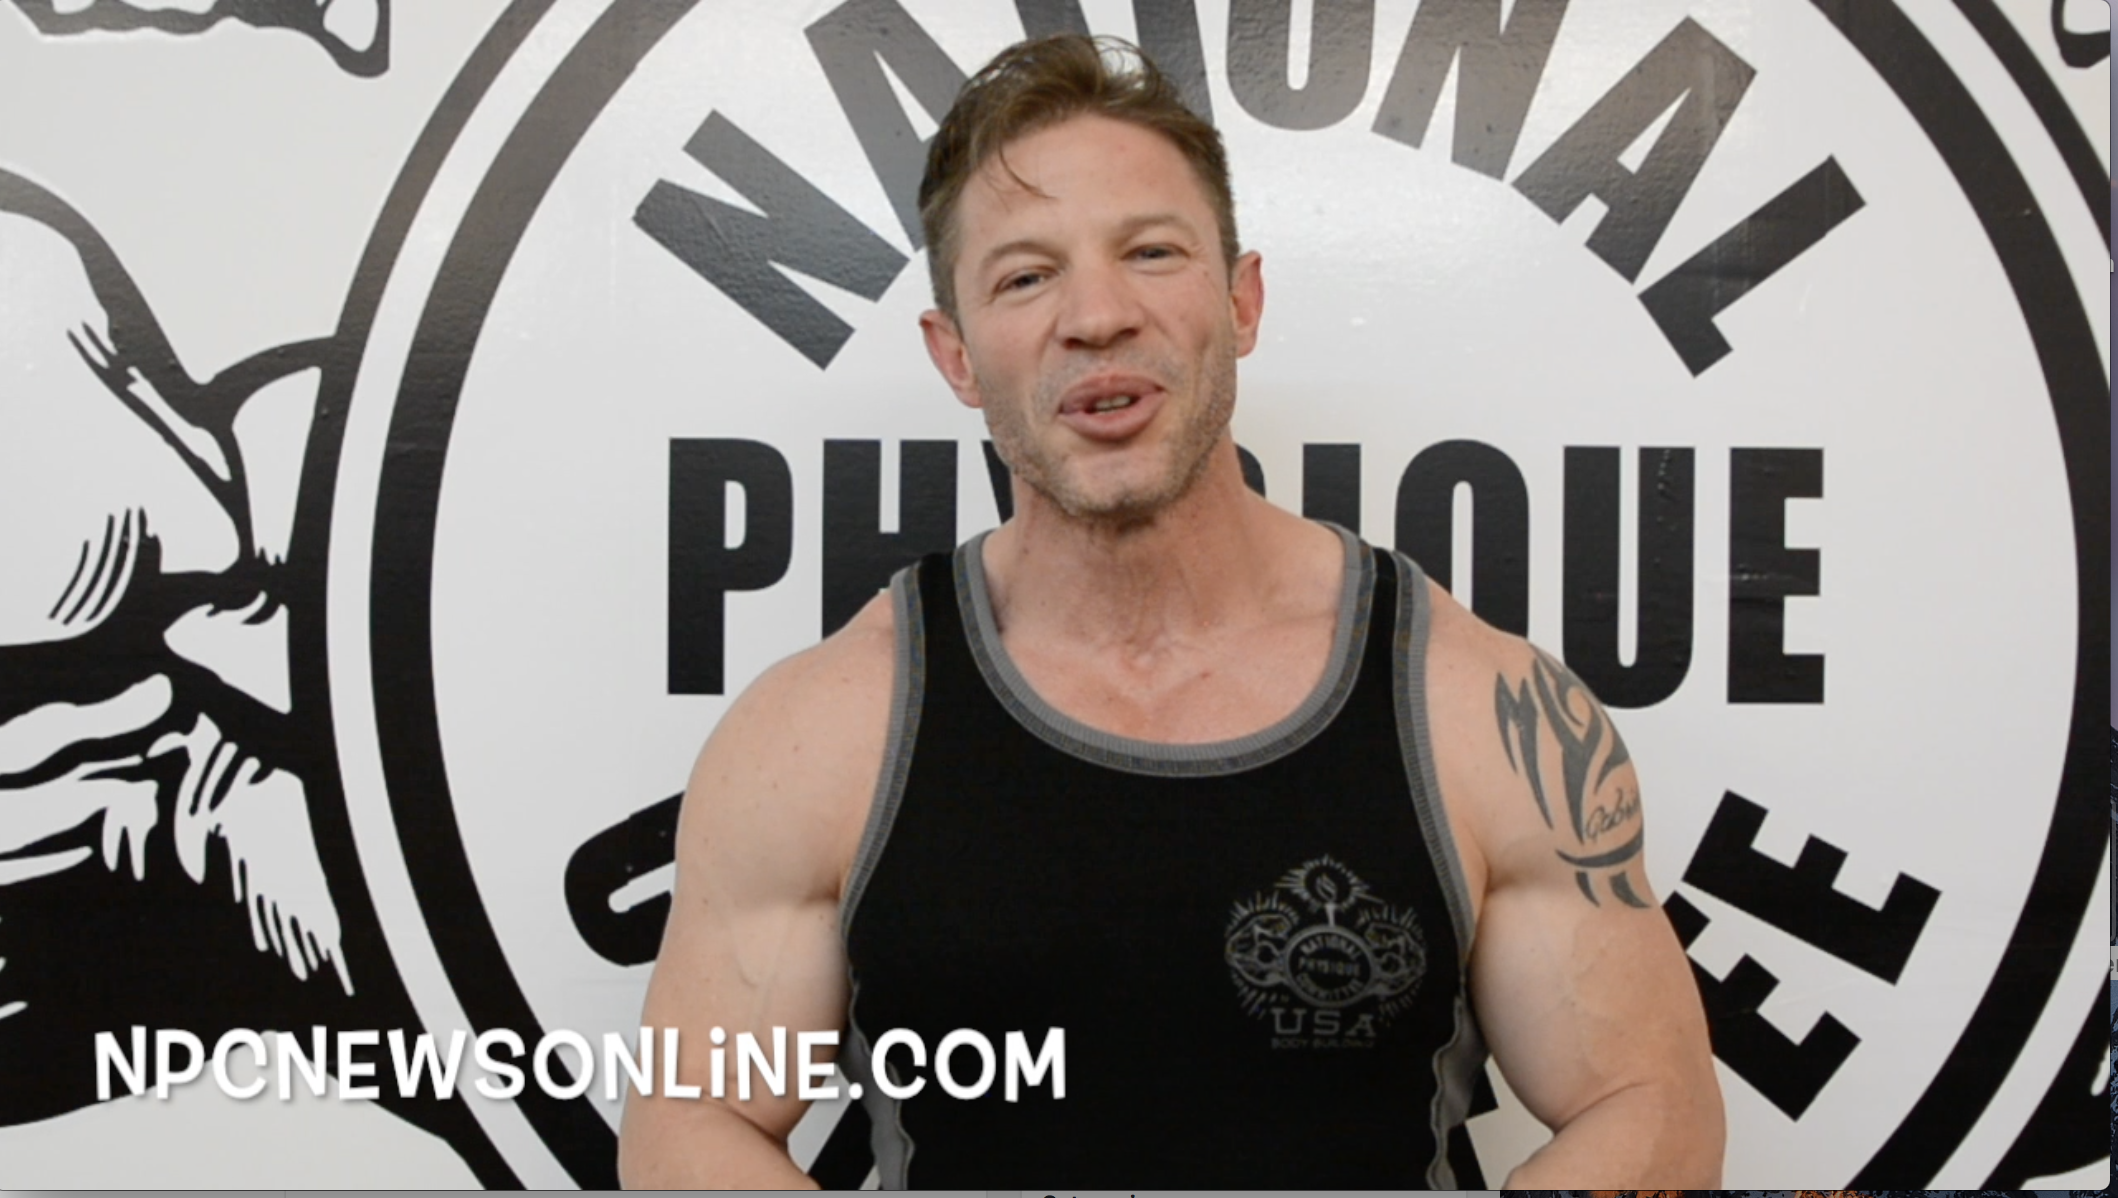 NPC Men's Physique Competitor Francisco Cardona: Tip Of The Day